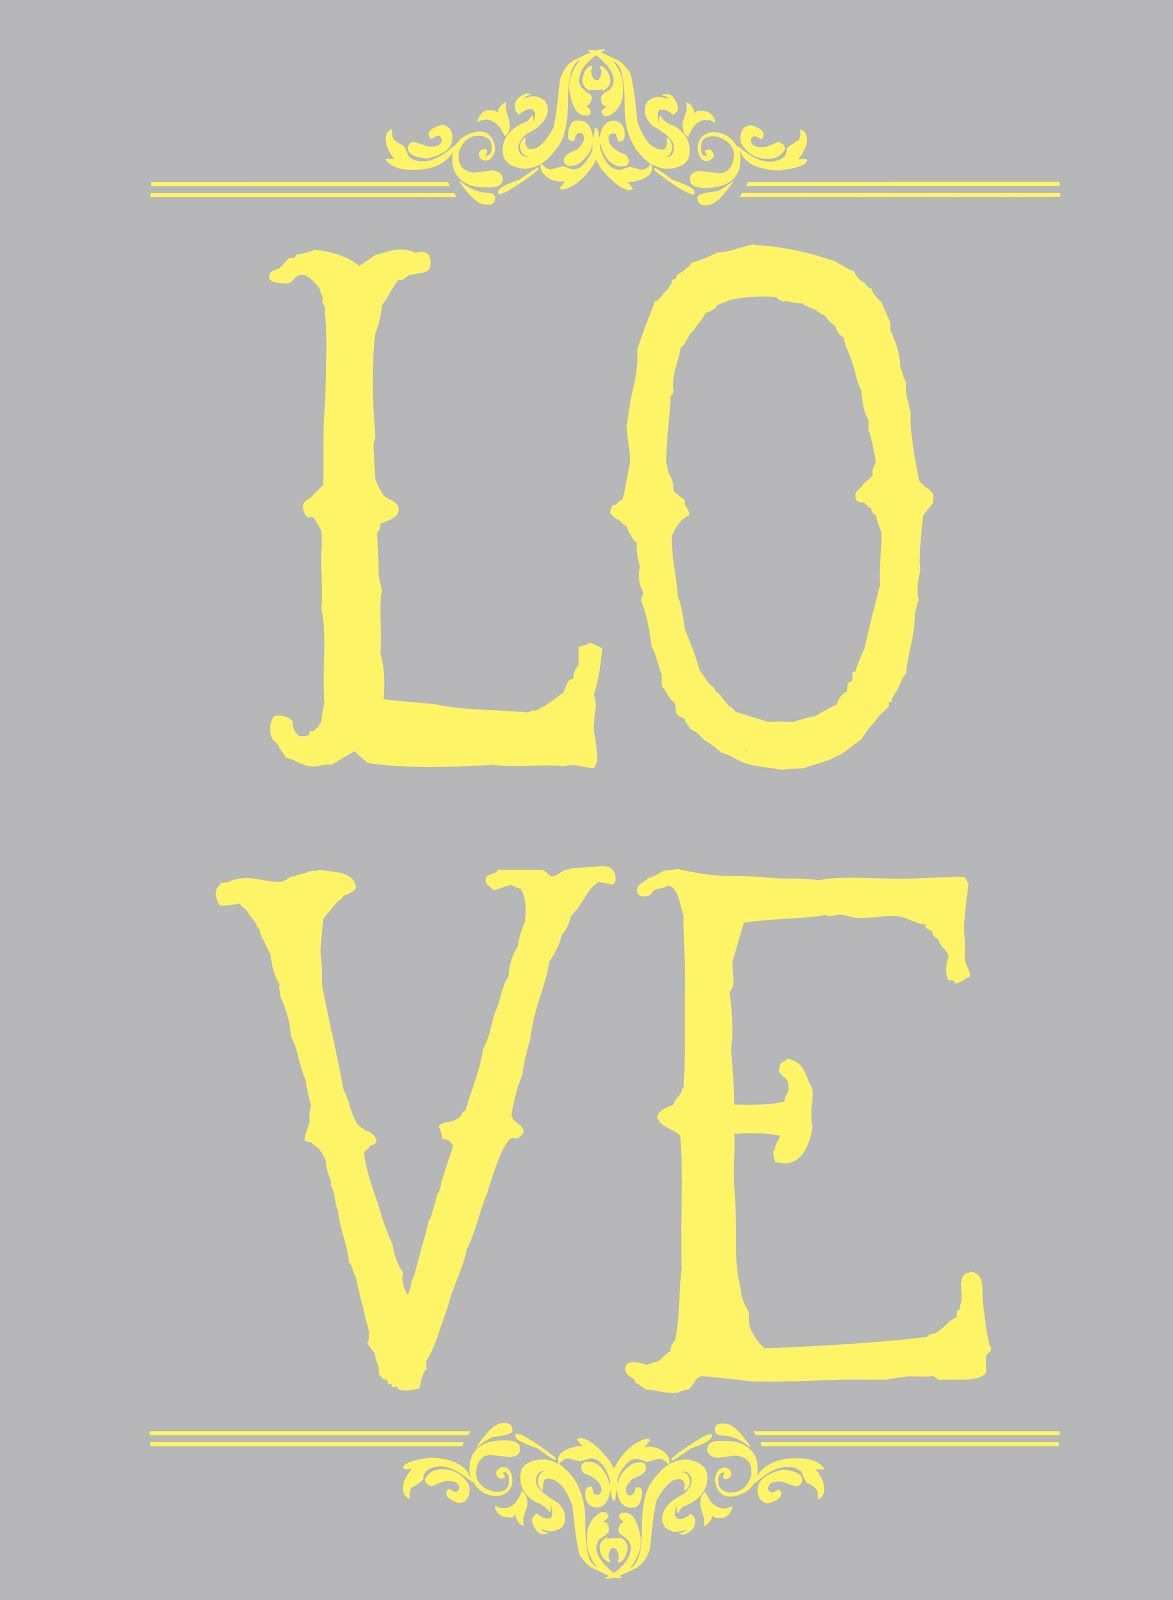 grey/yellow printables | Poster | Pinterest | Grey yellow, Gray and ...